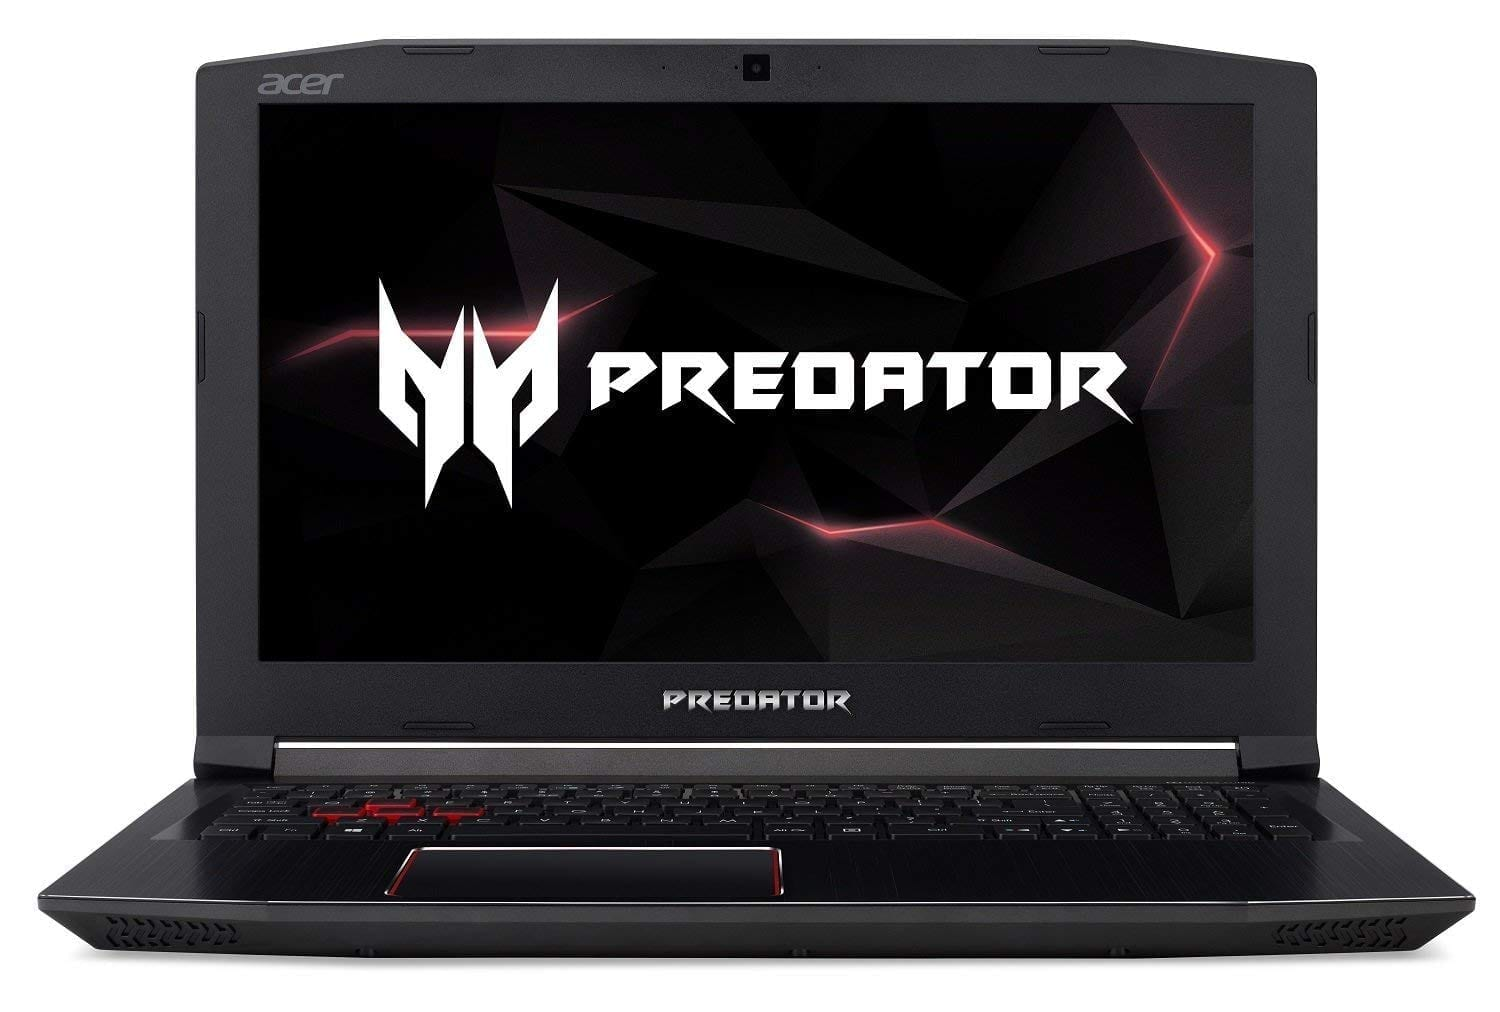 Acer Predator Helios 300 Gaming Laptop, 15.6 inch full HD IPS Display Gaming Laptop